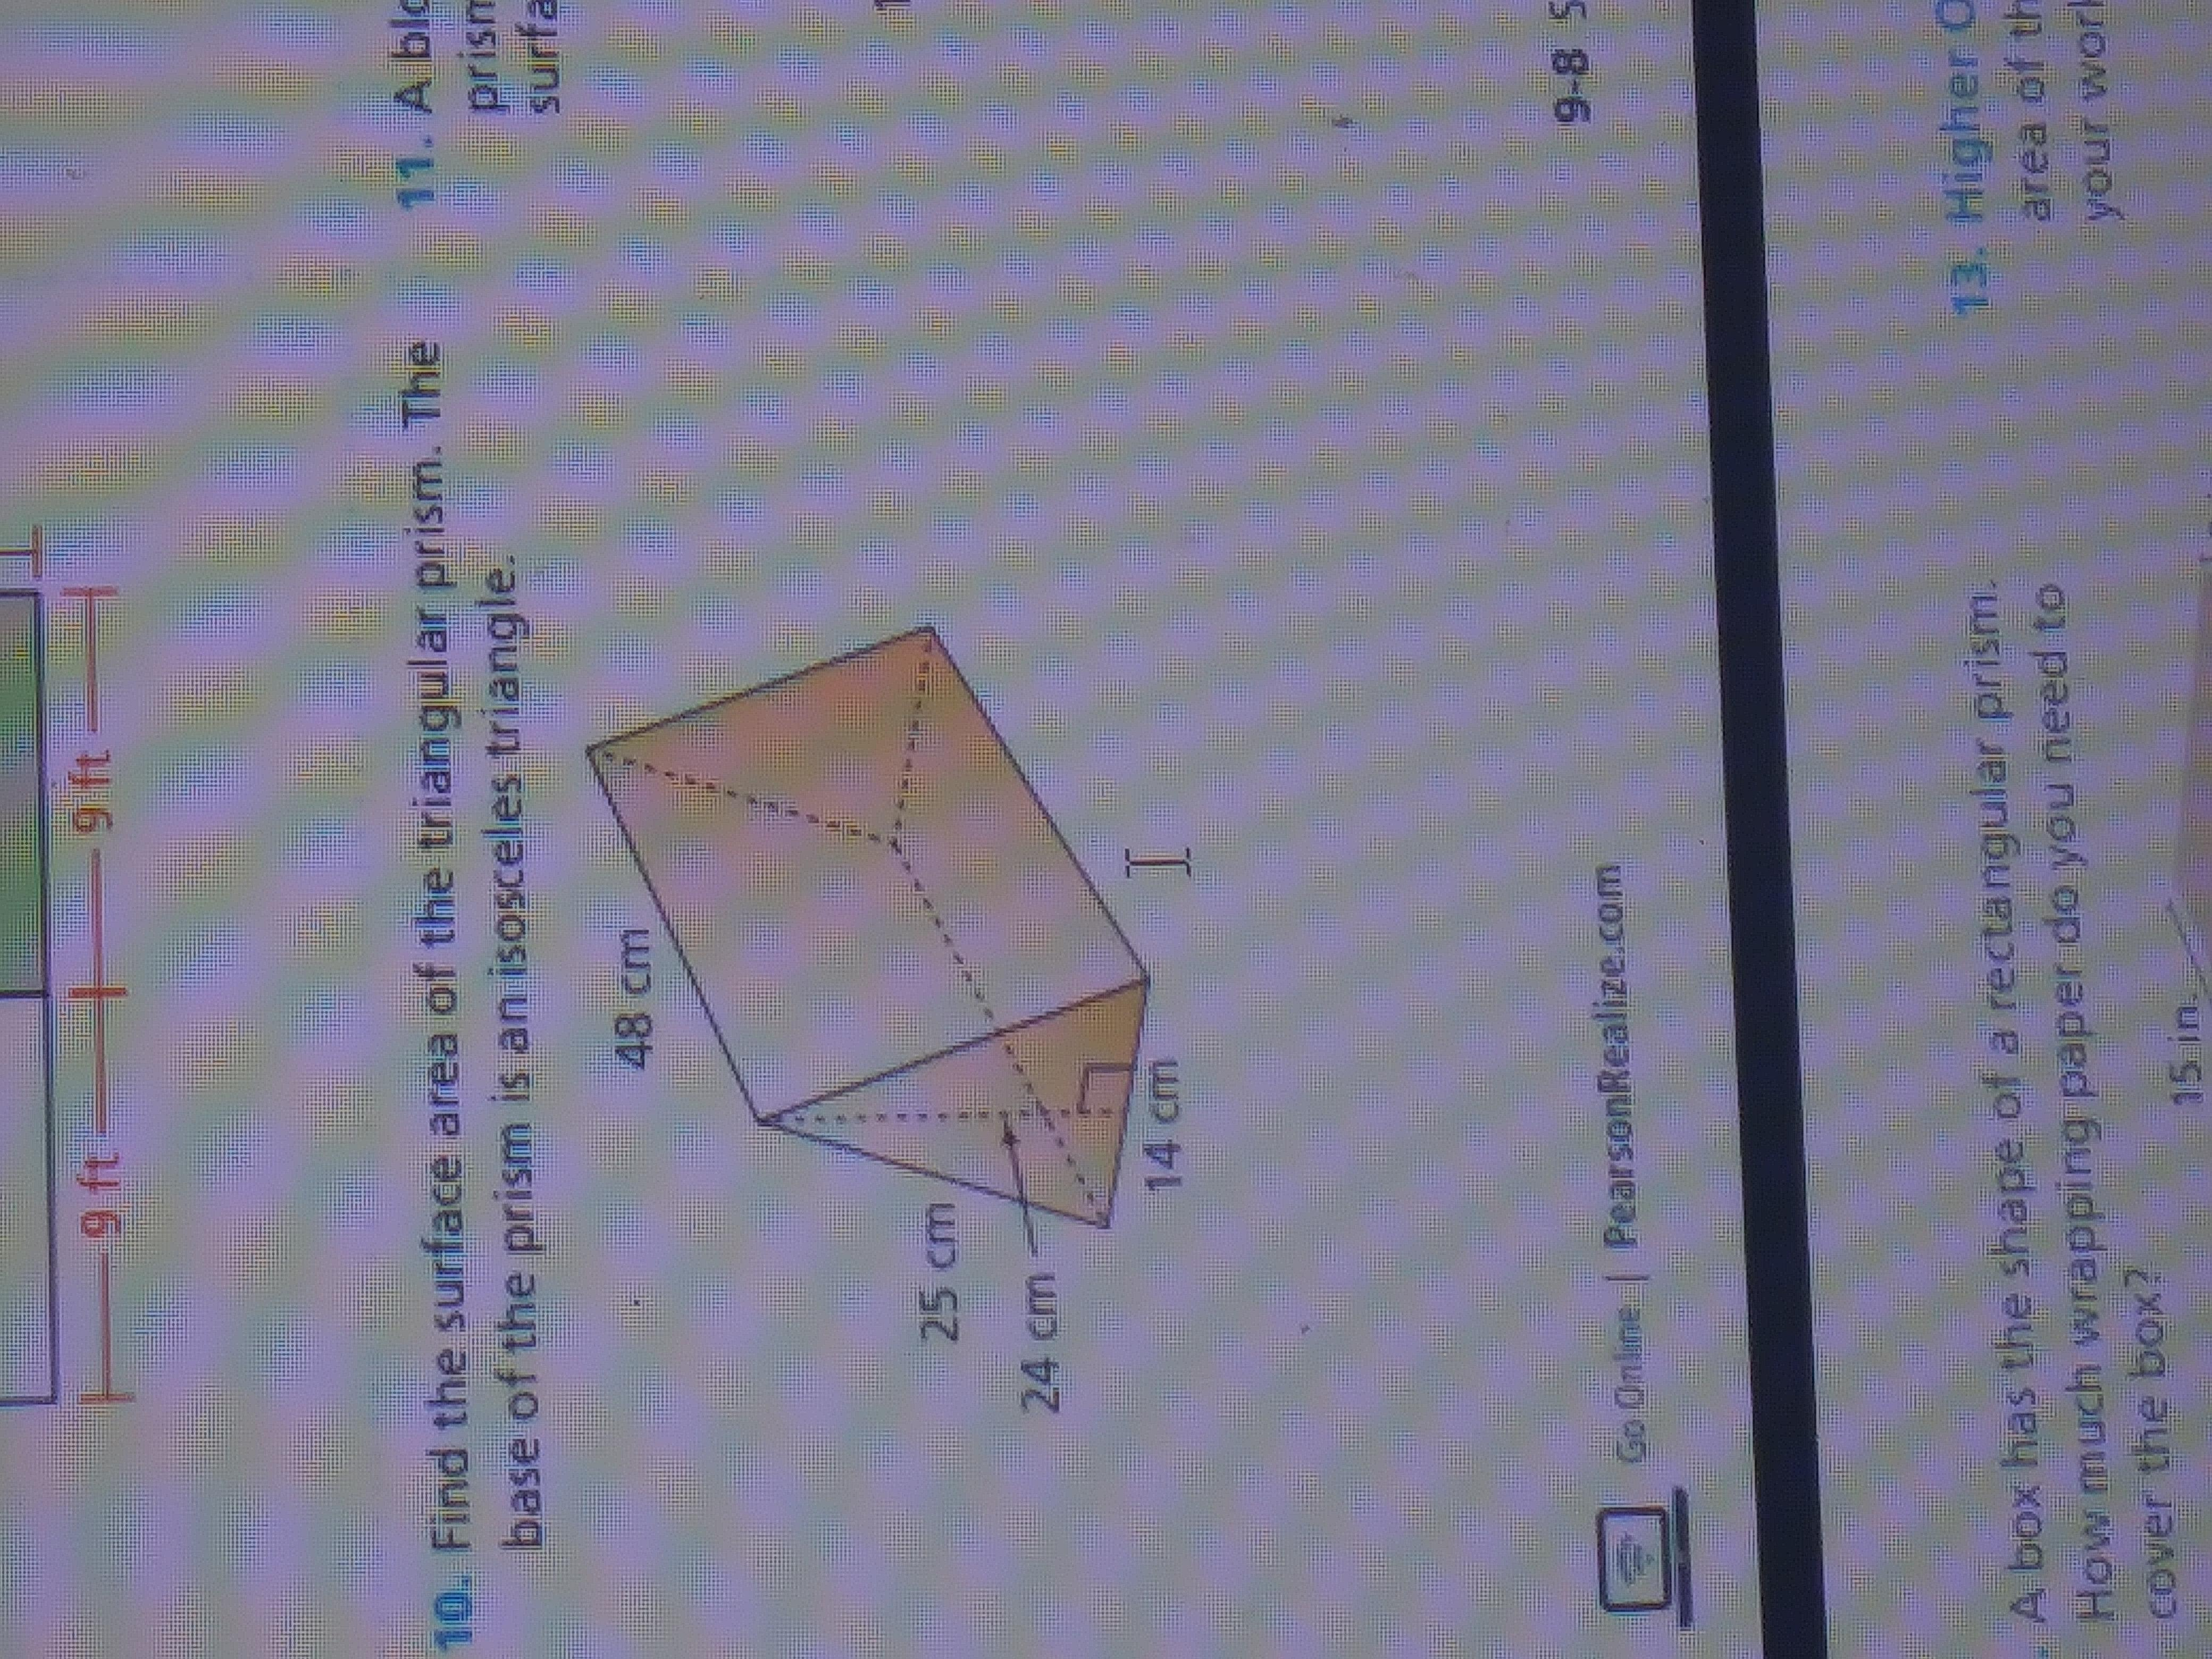 Find The Surface Area Of The Triangular Prism The Base Of